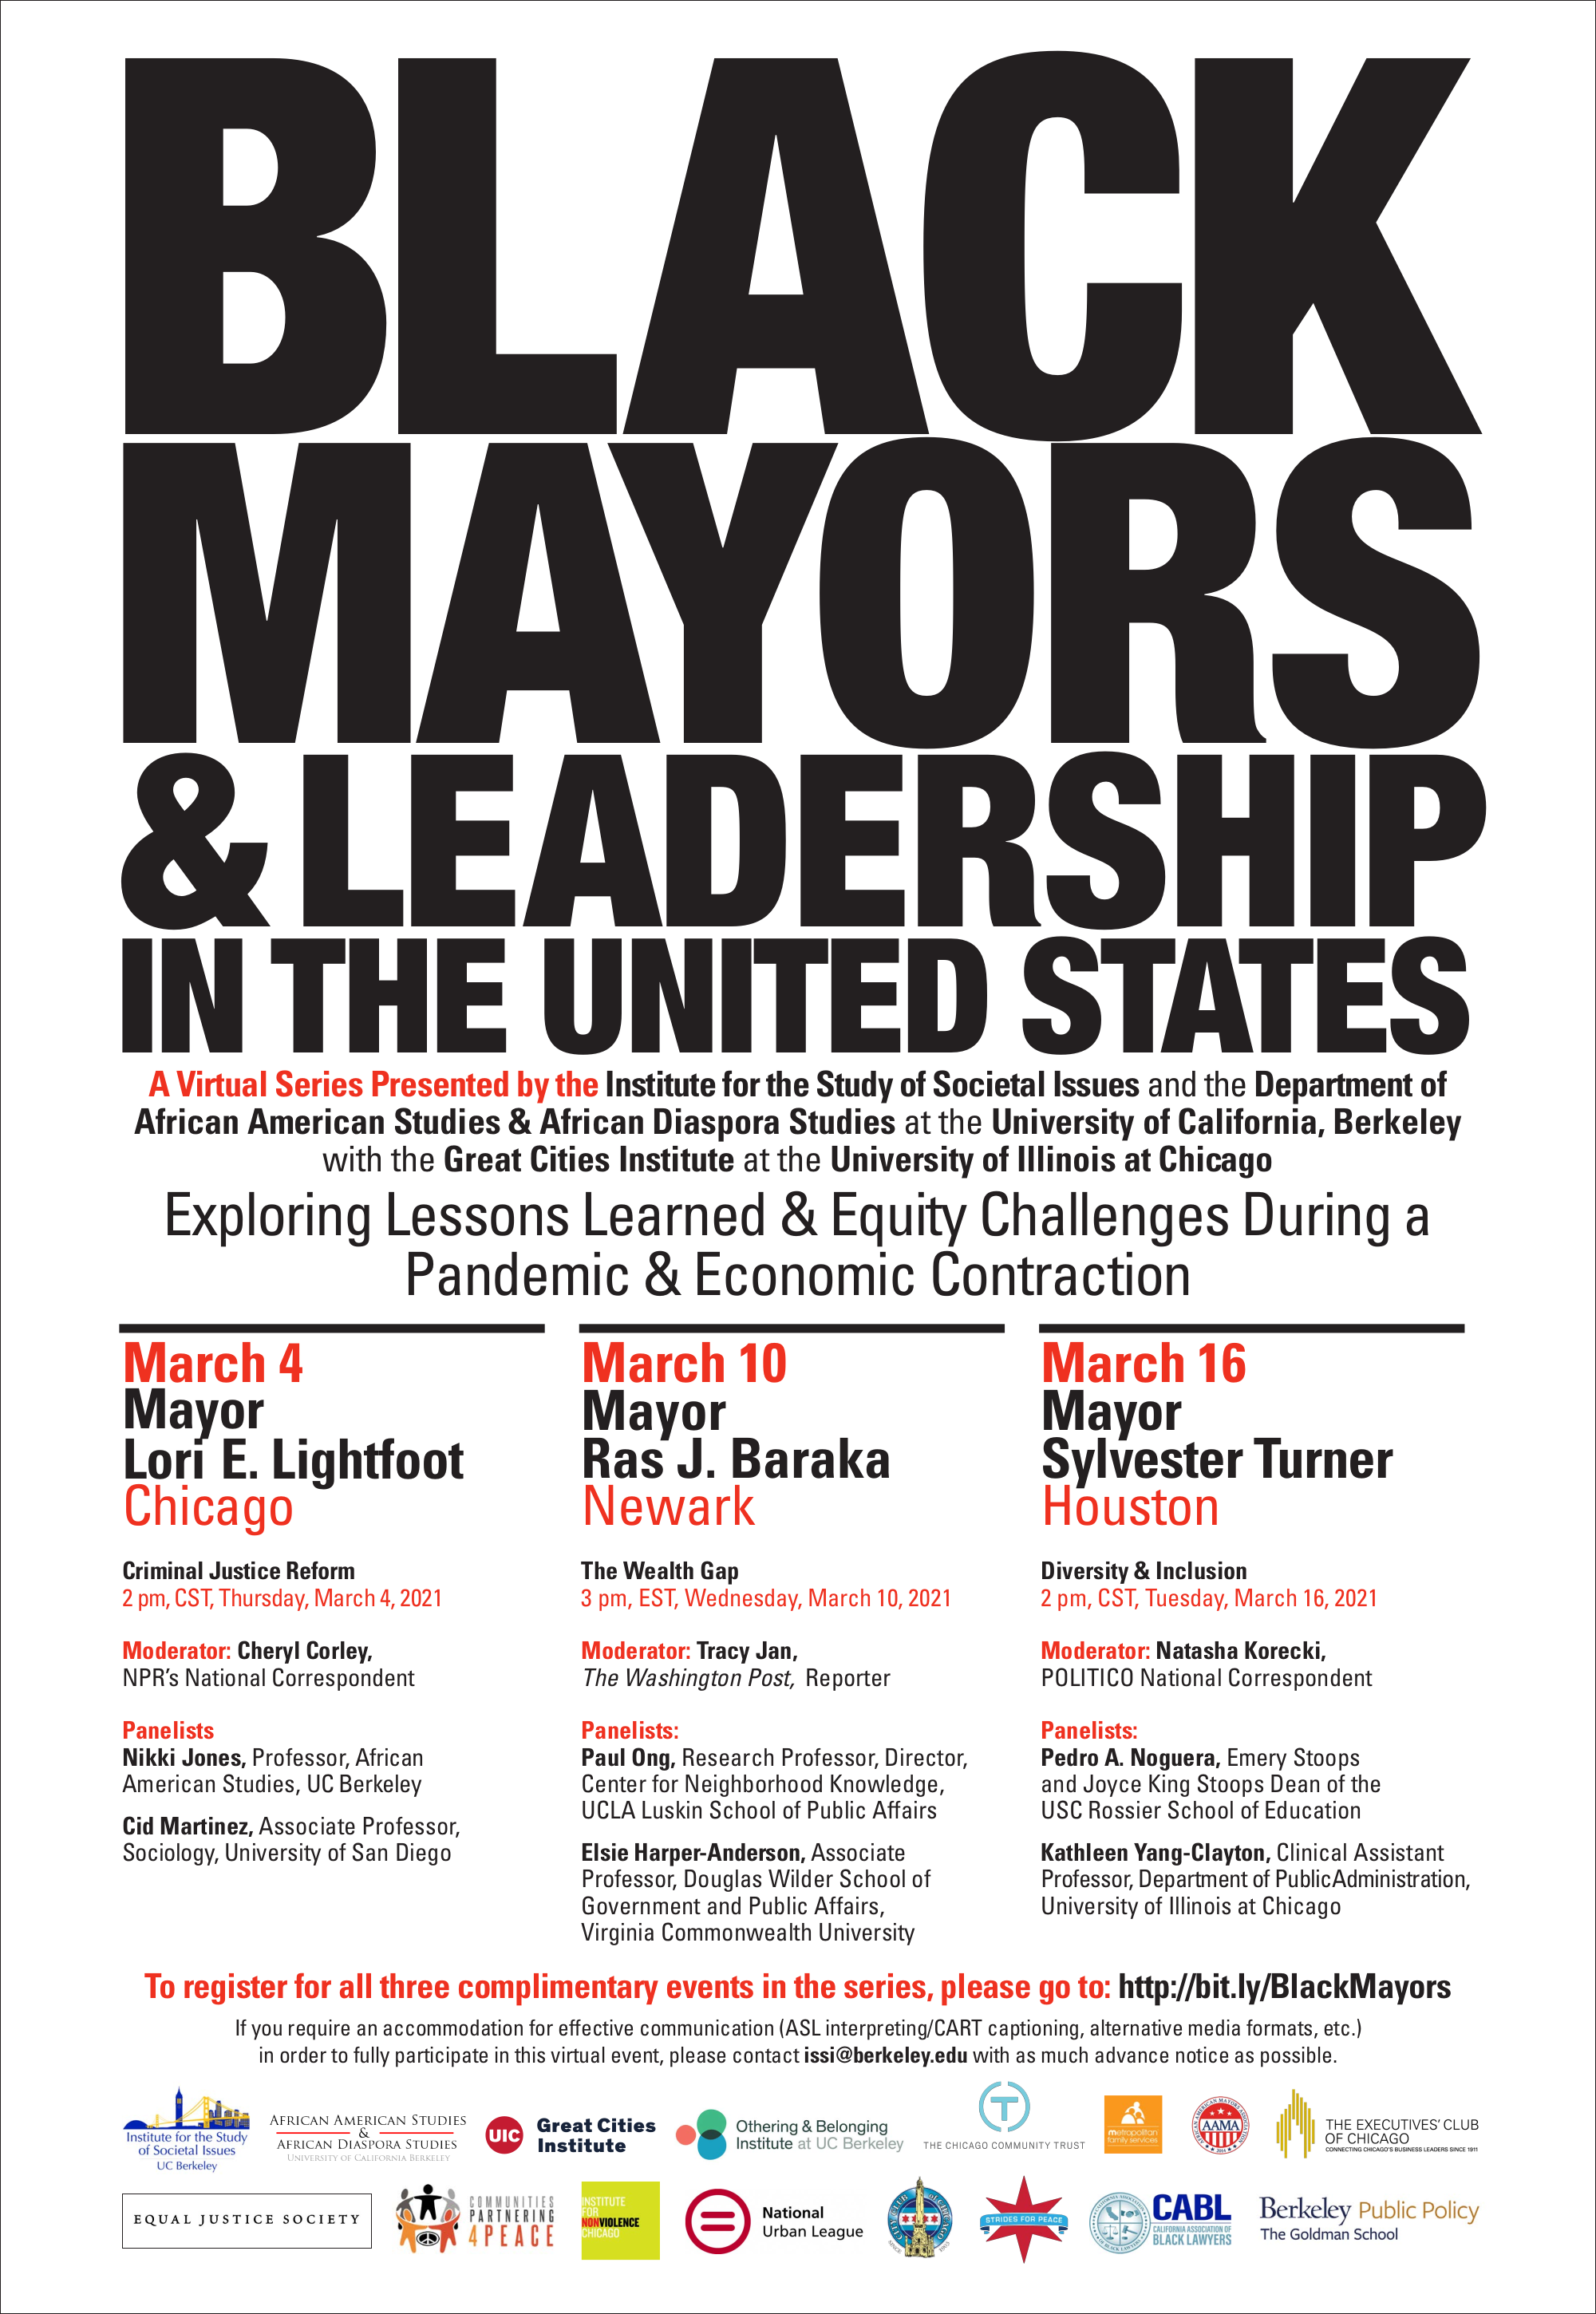 Black Mayor Series Flier. It says exactly what is written underneath the image